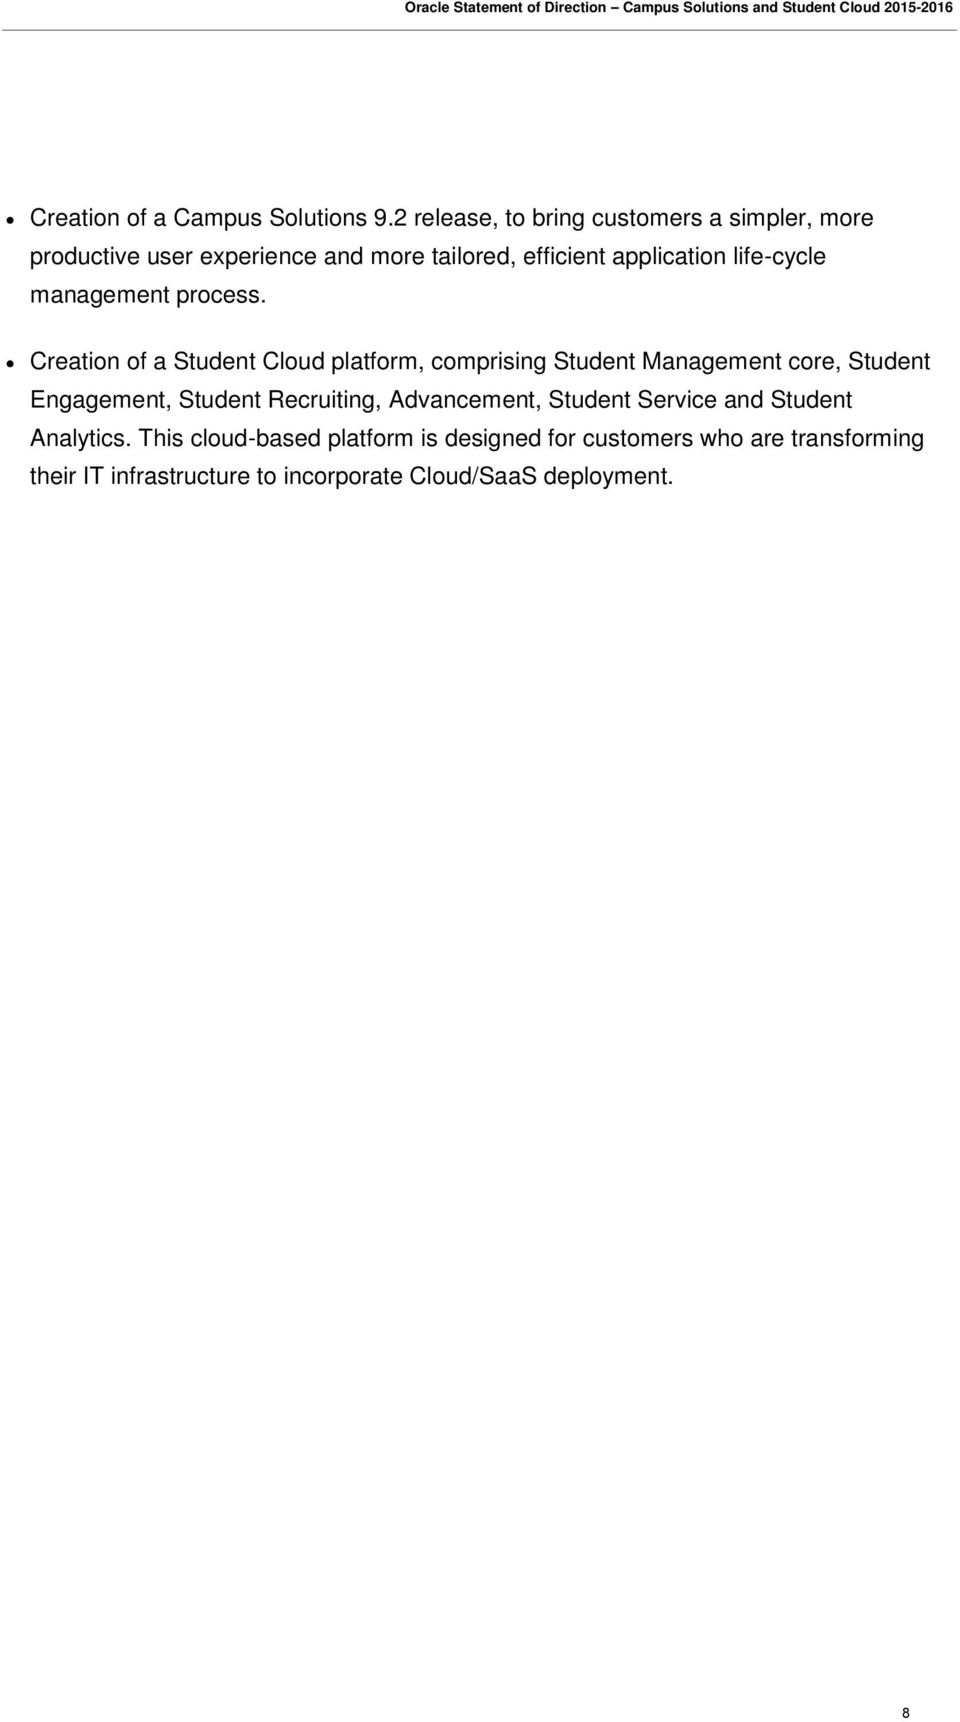 emc cloud infrastructure and services student guide pdf